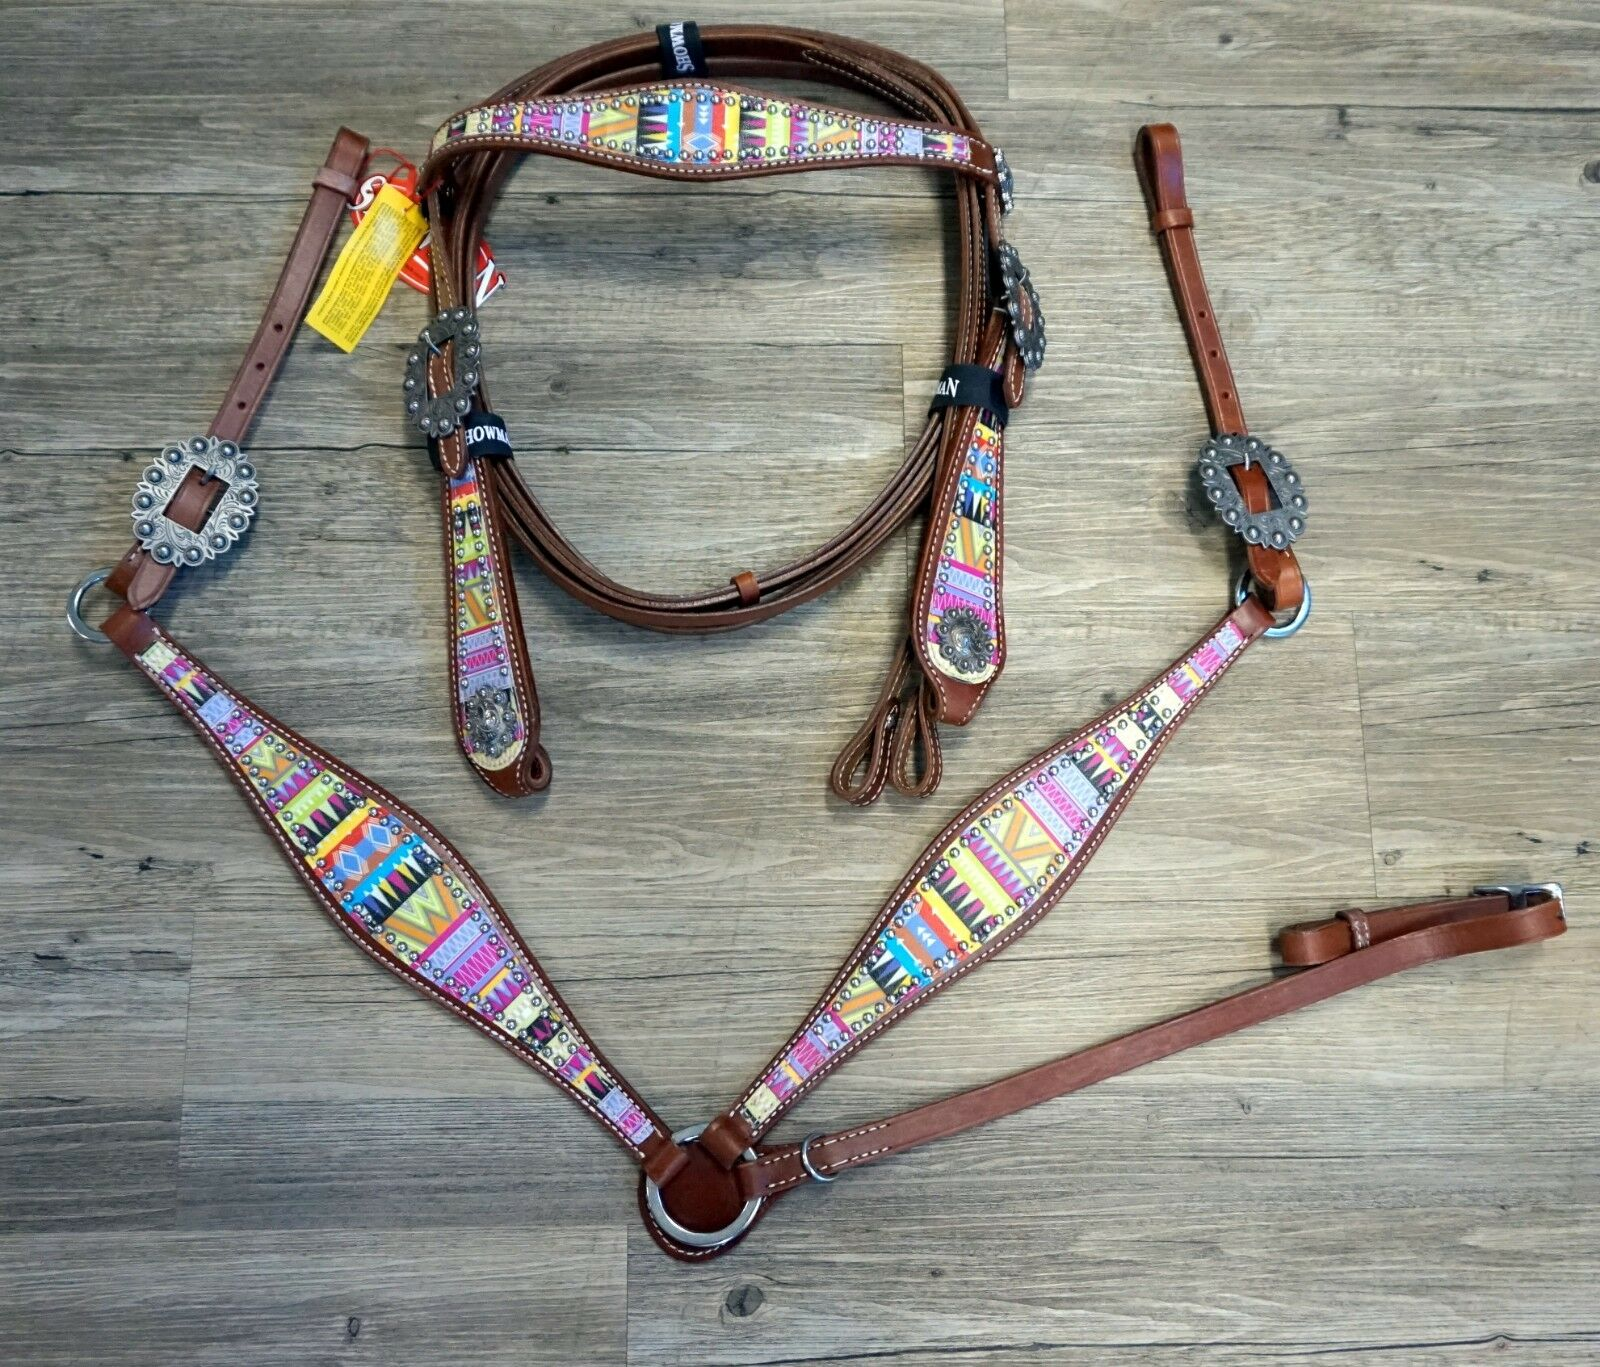 Showman Medium Leather Headstall & Breast Collar w Pastel Aztec Print Overlay